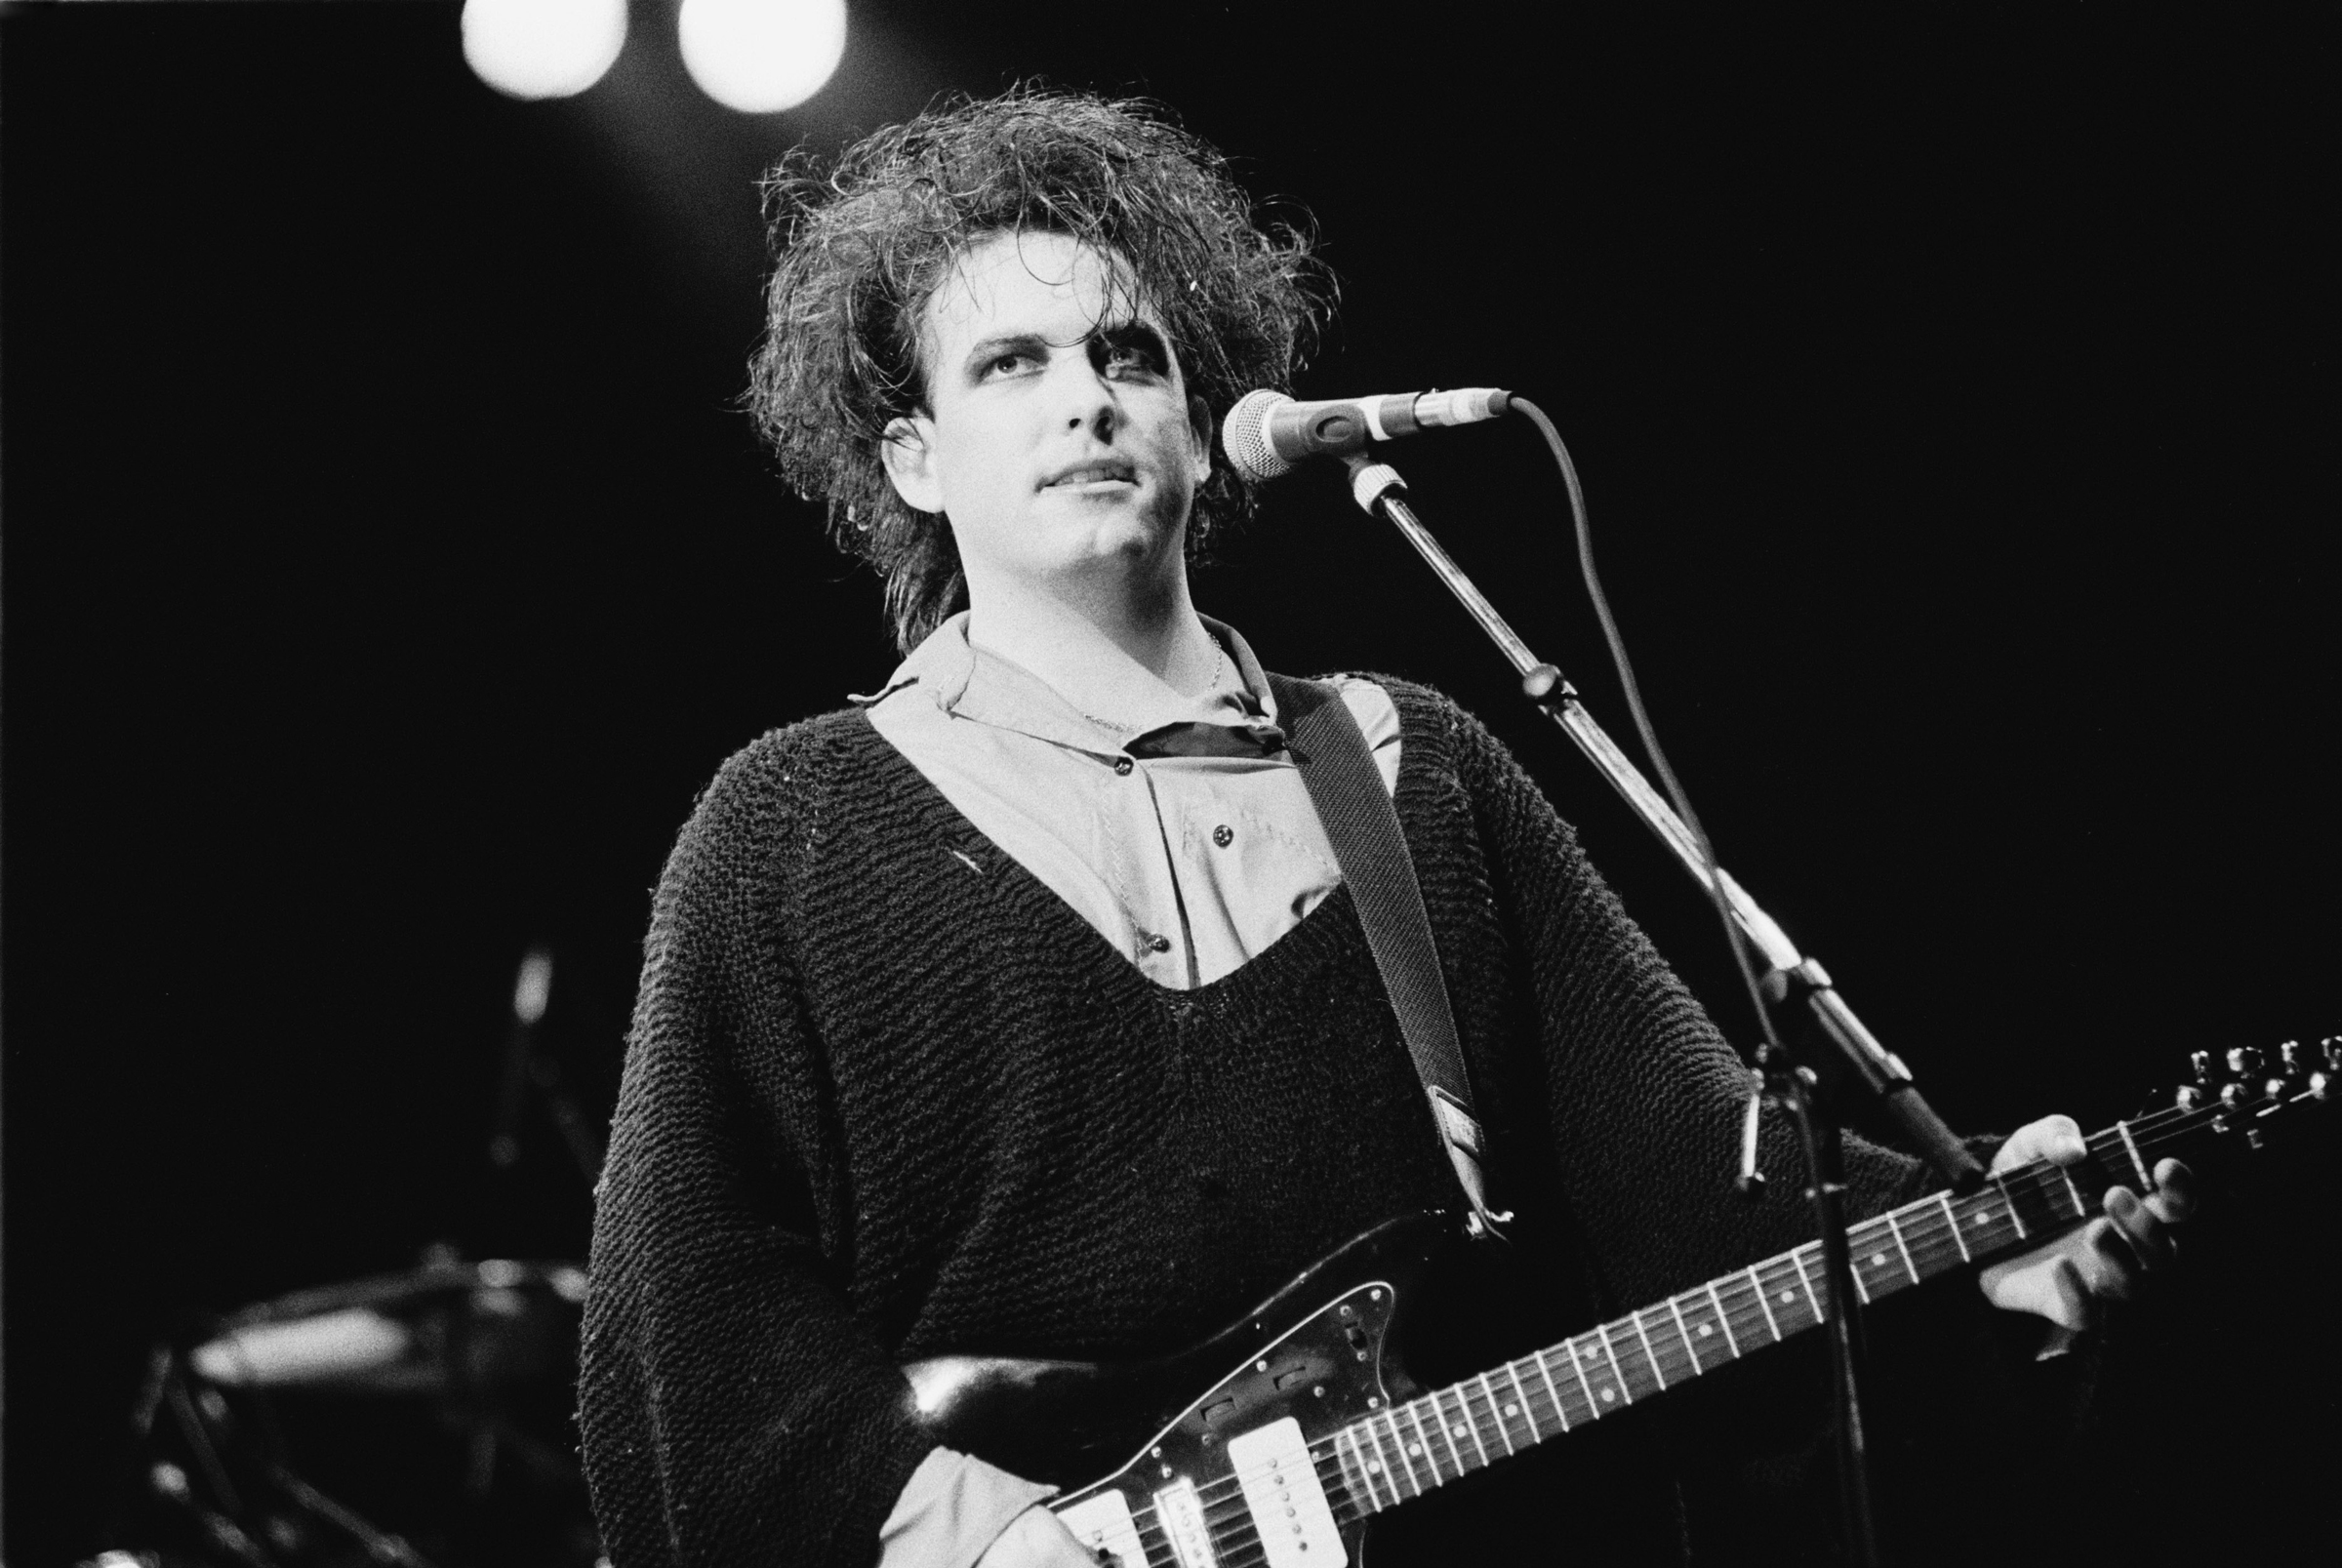 Robert Smith, vocal, performs with The Cure at Torhout/Werchter festival in Torhout, Belgium on 7th July 7th, 1989.